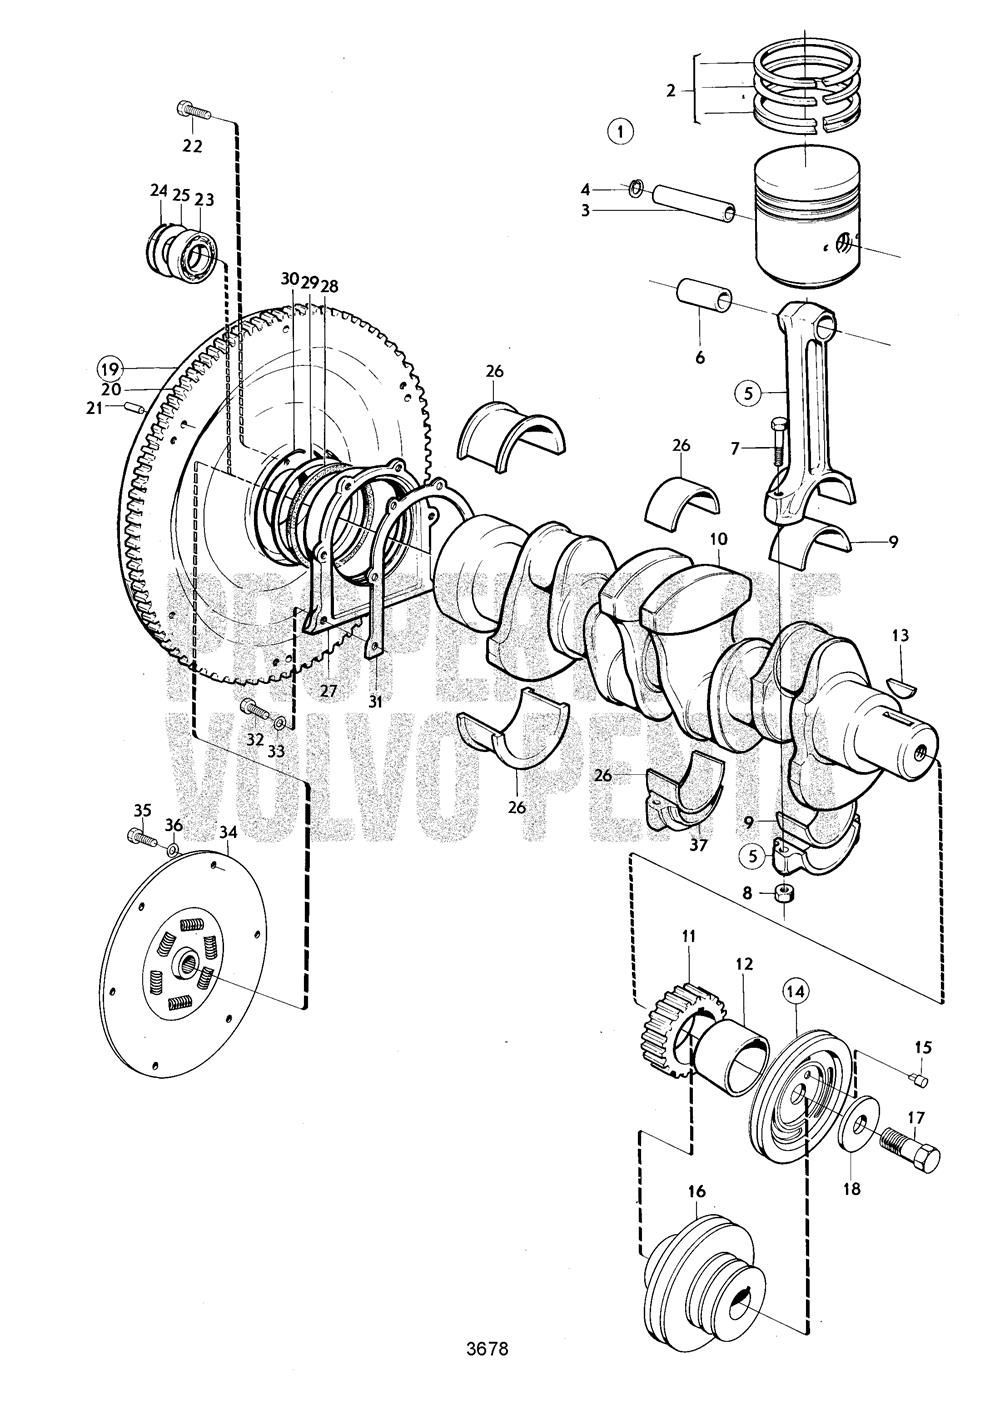 medium resolution of watch parts diagram group picture image by tag keywordpictures pt cruiser engine diagram group picture image by tag